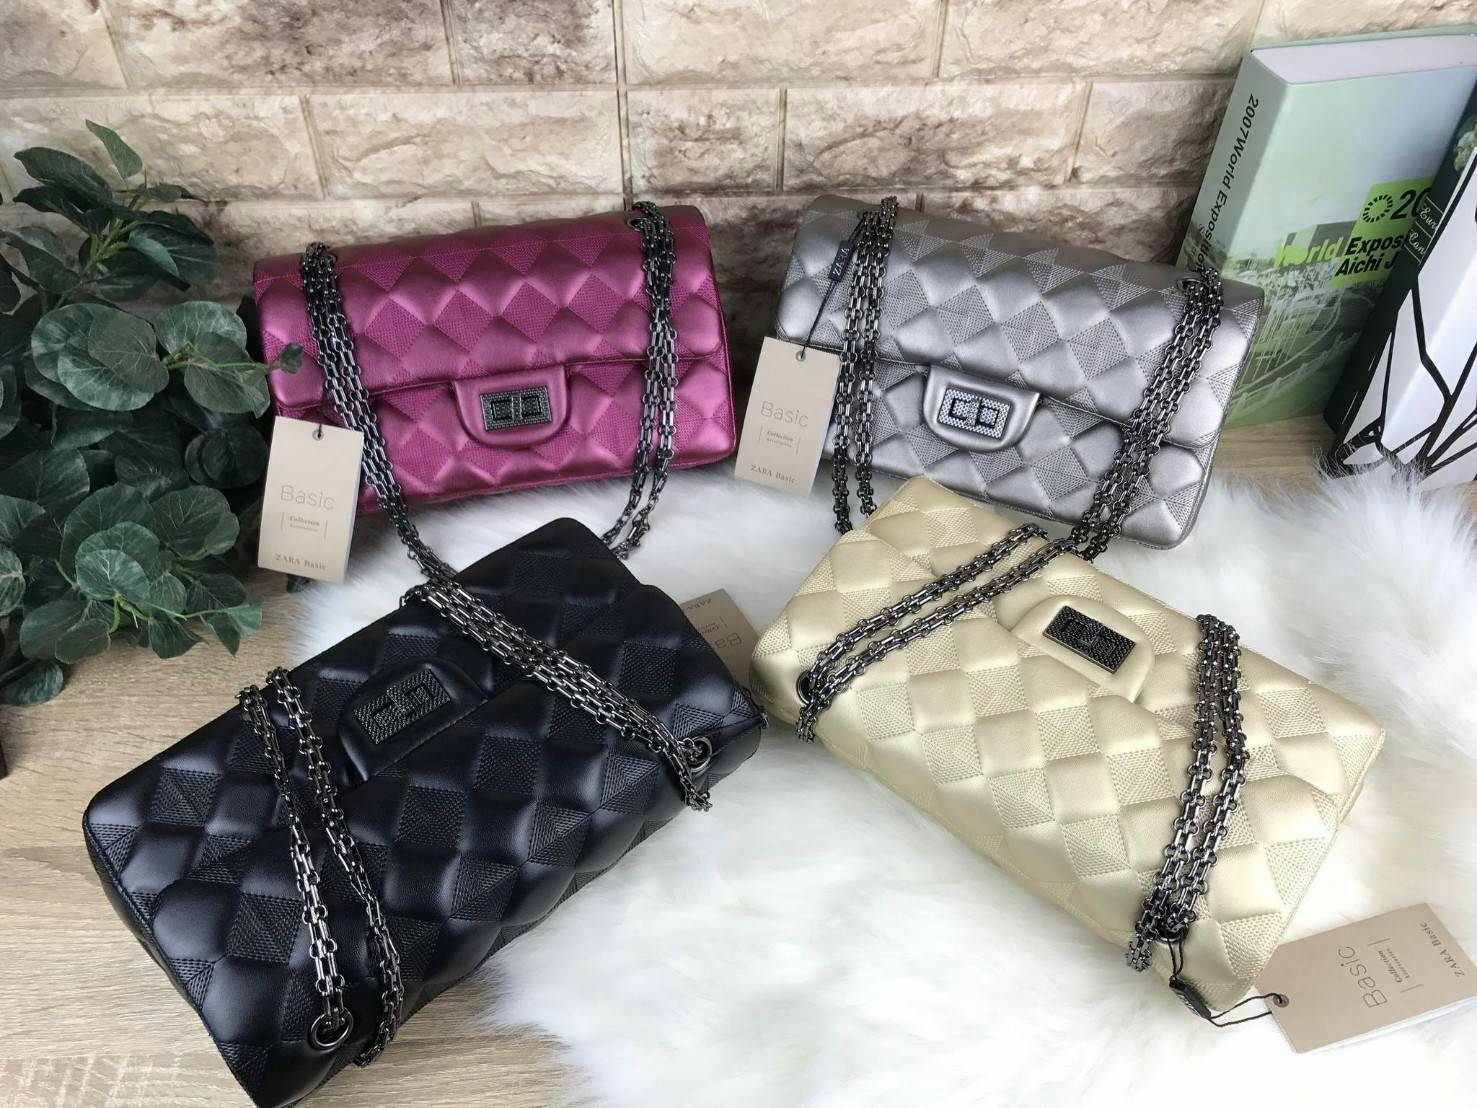 ZARA BASIC QUILTED CHAIN BAG